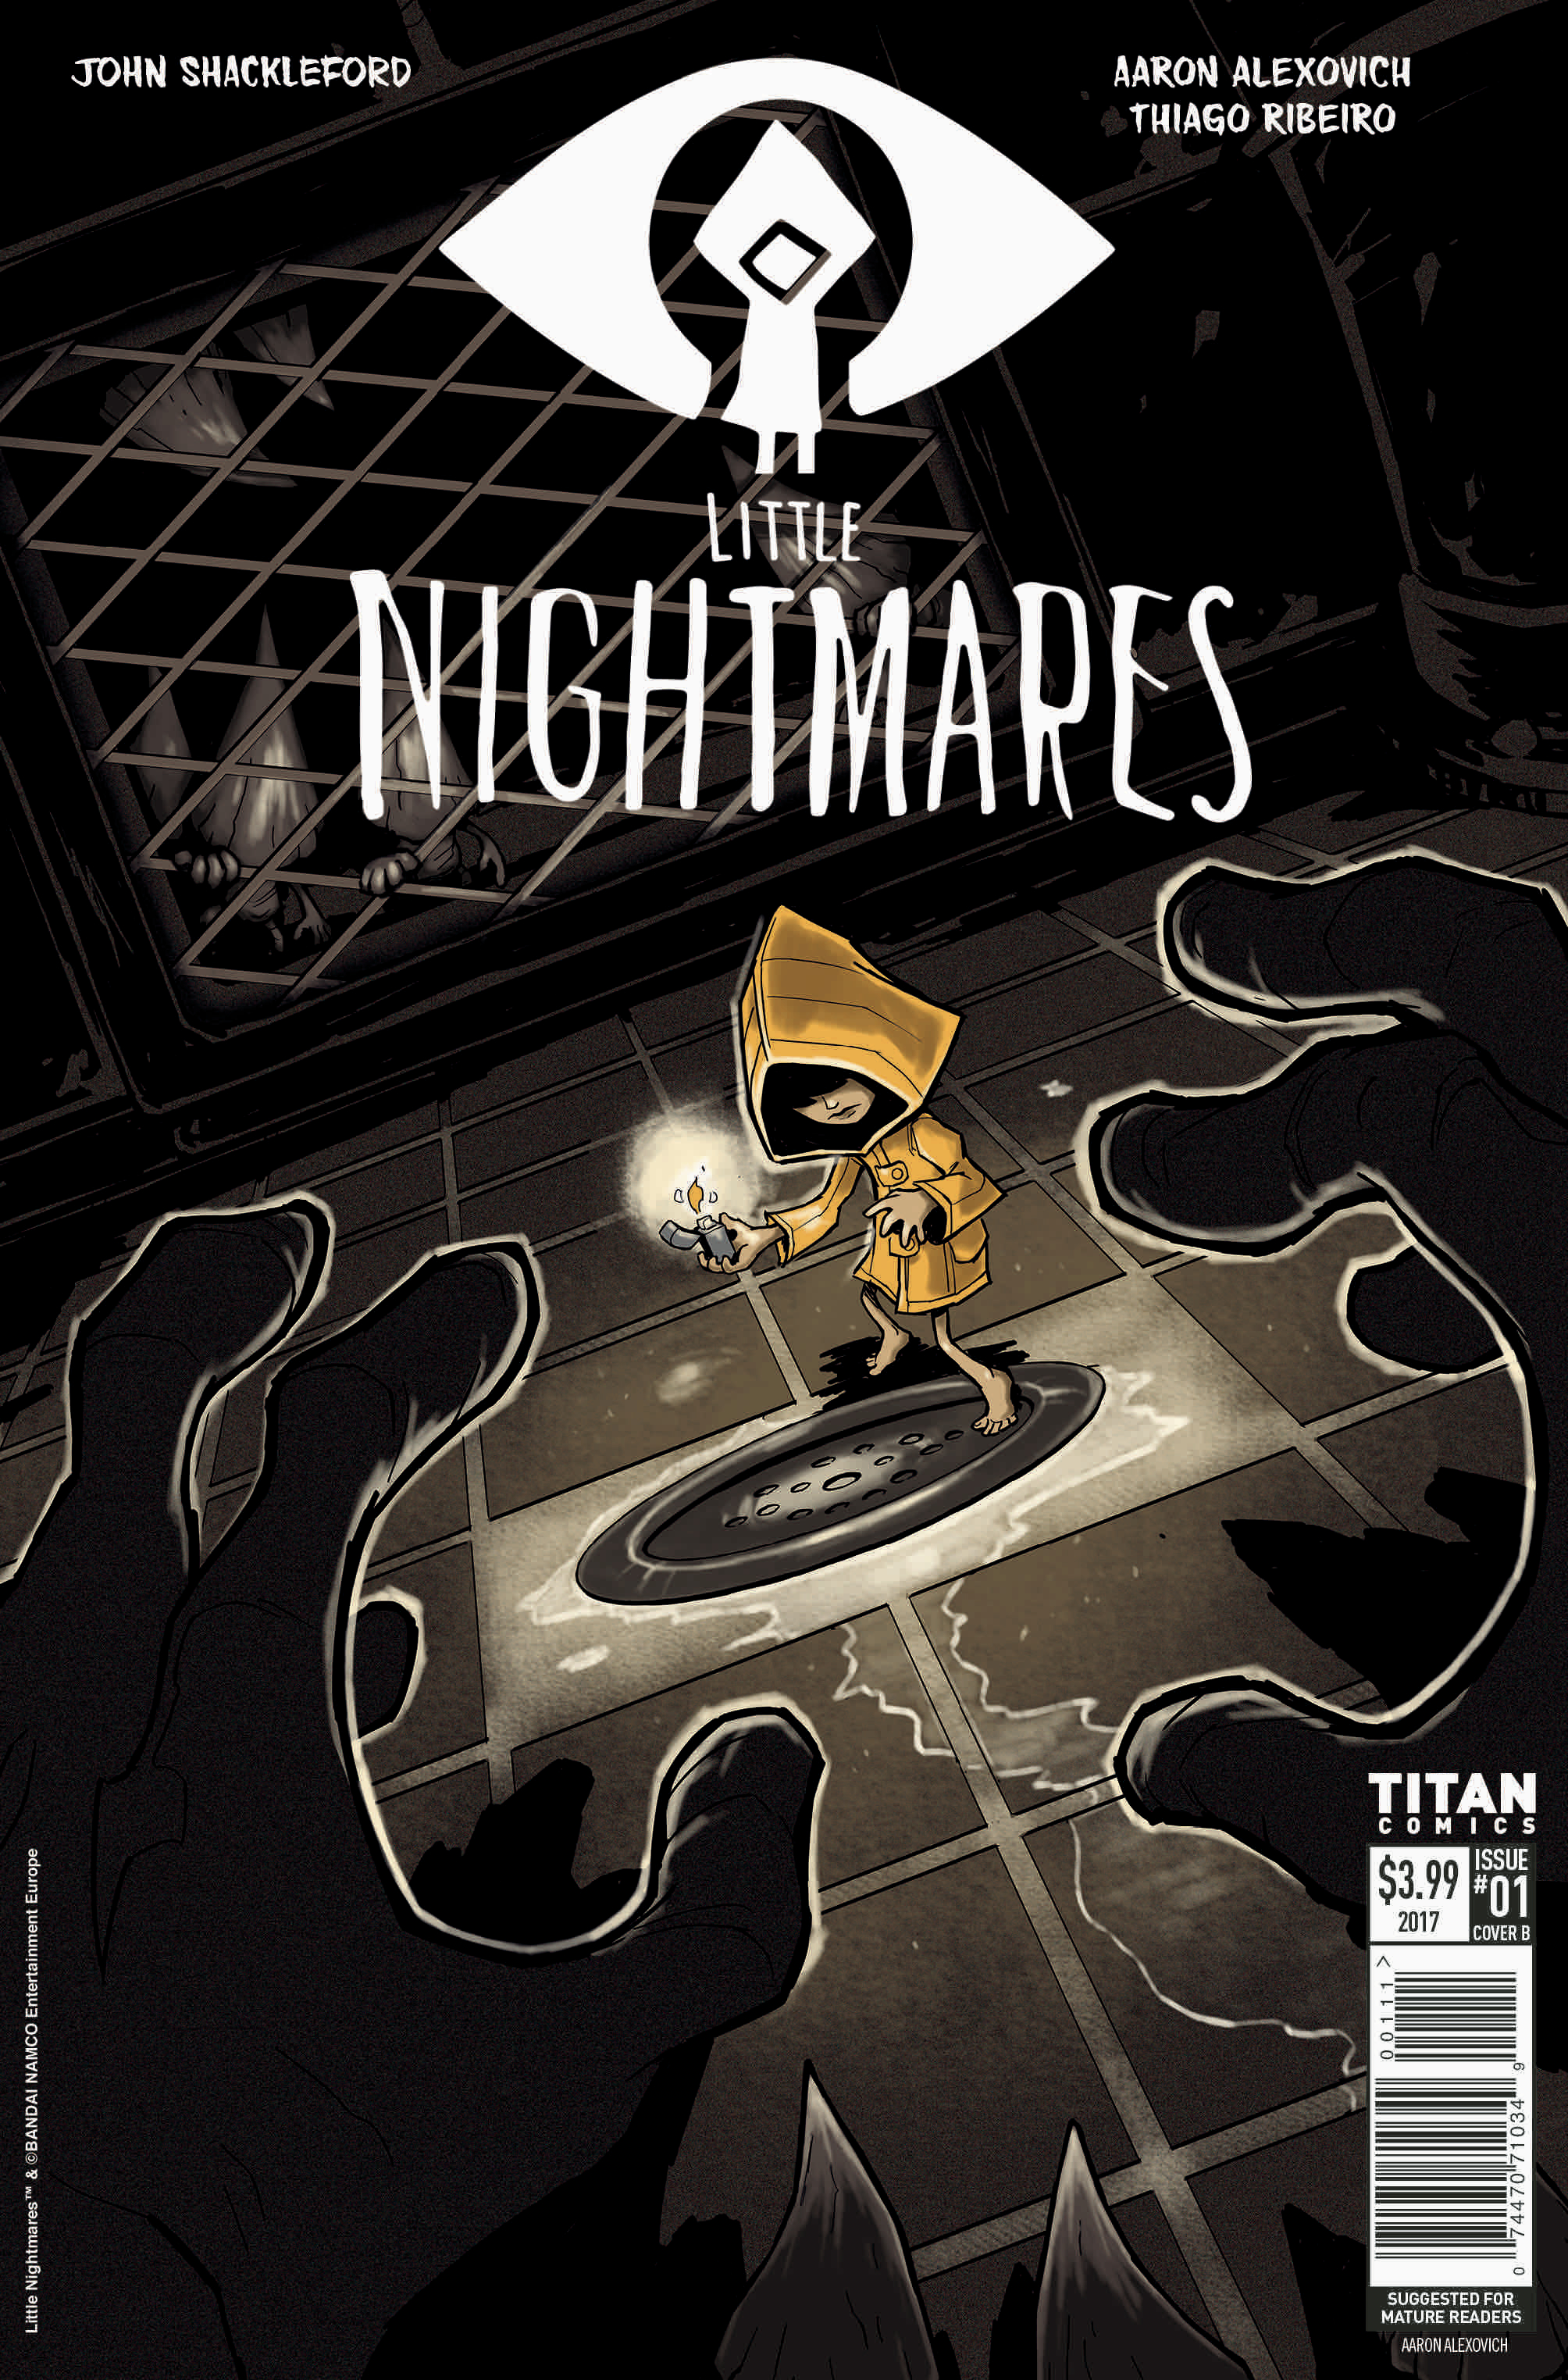 LITTLE NIGHTMARES #1